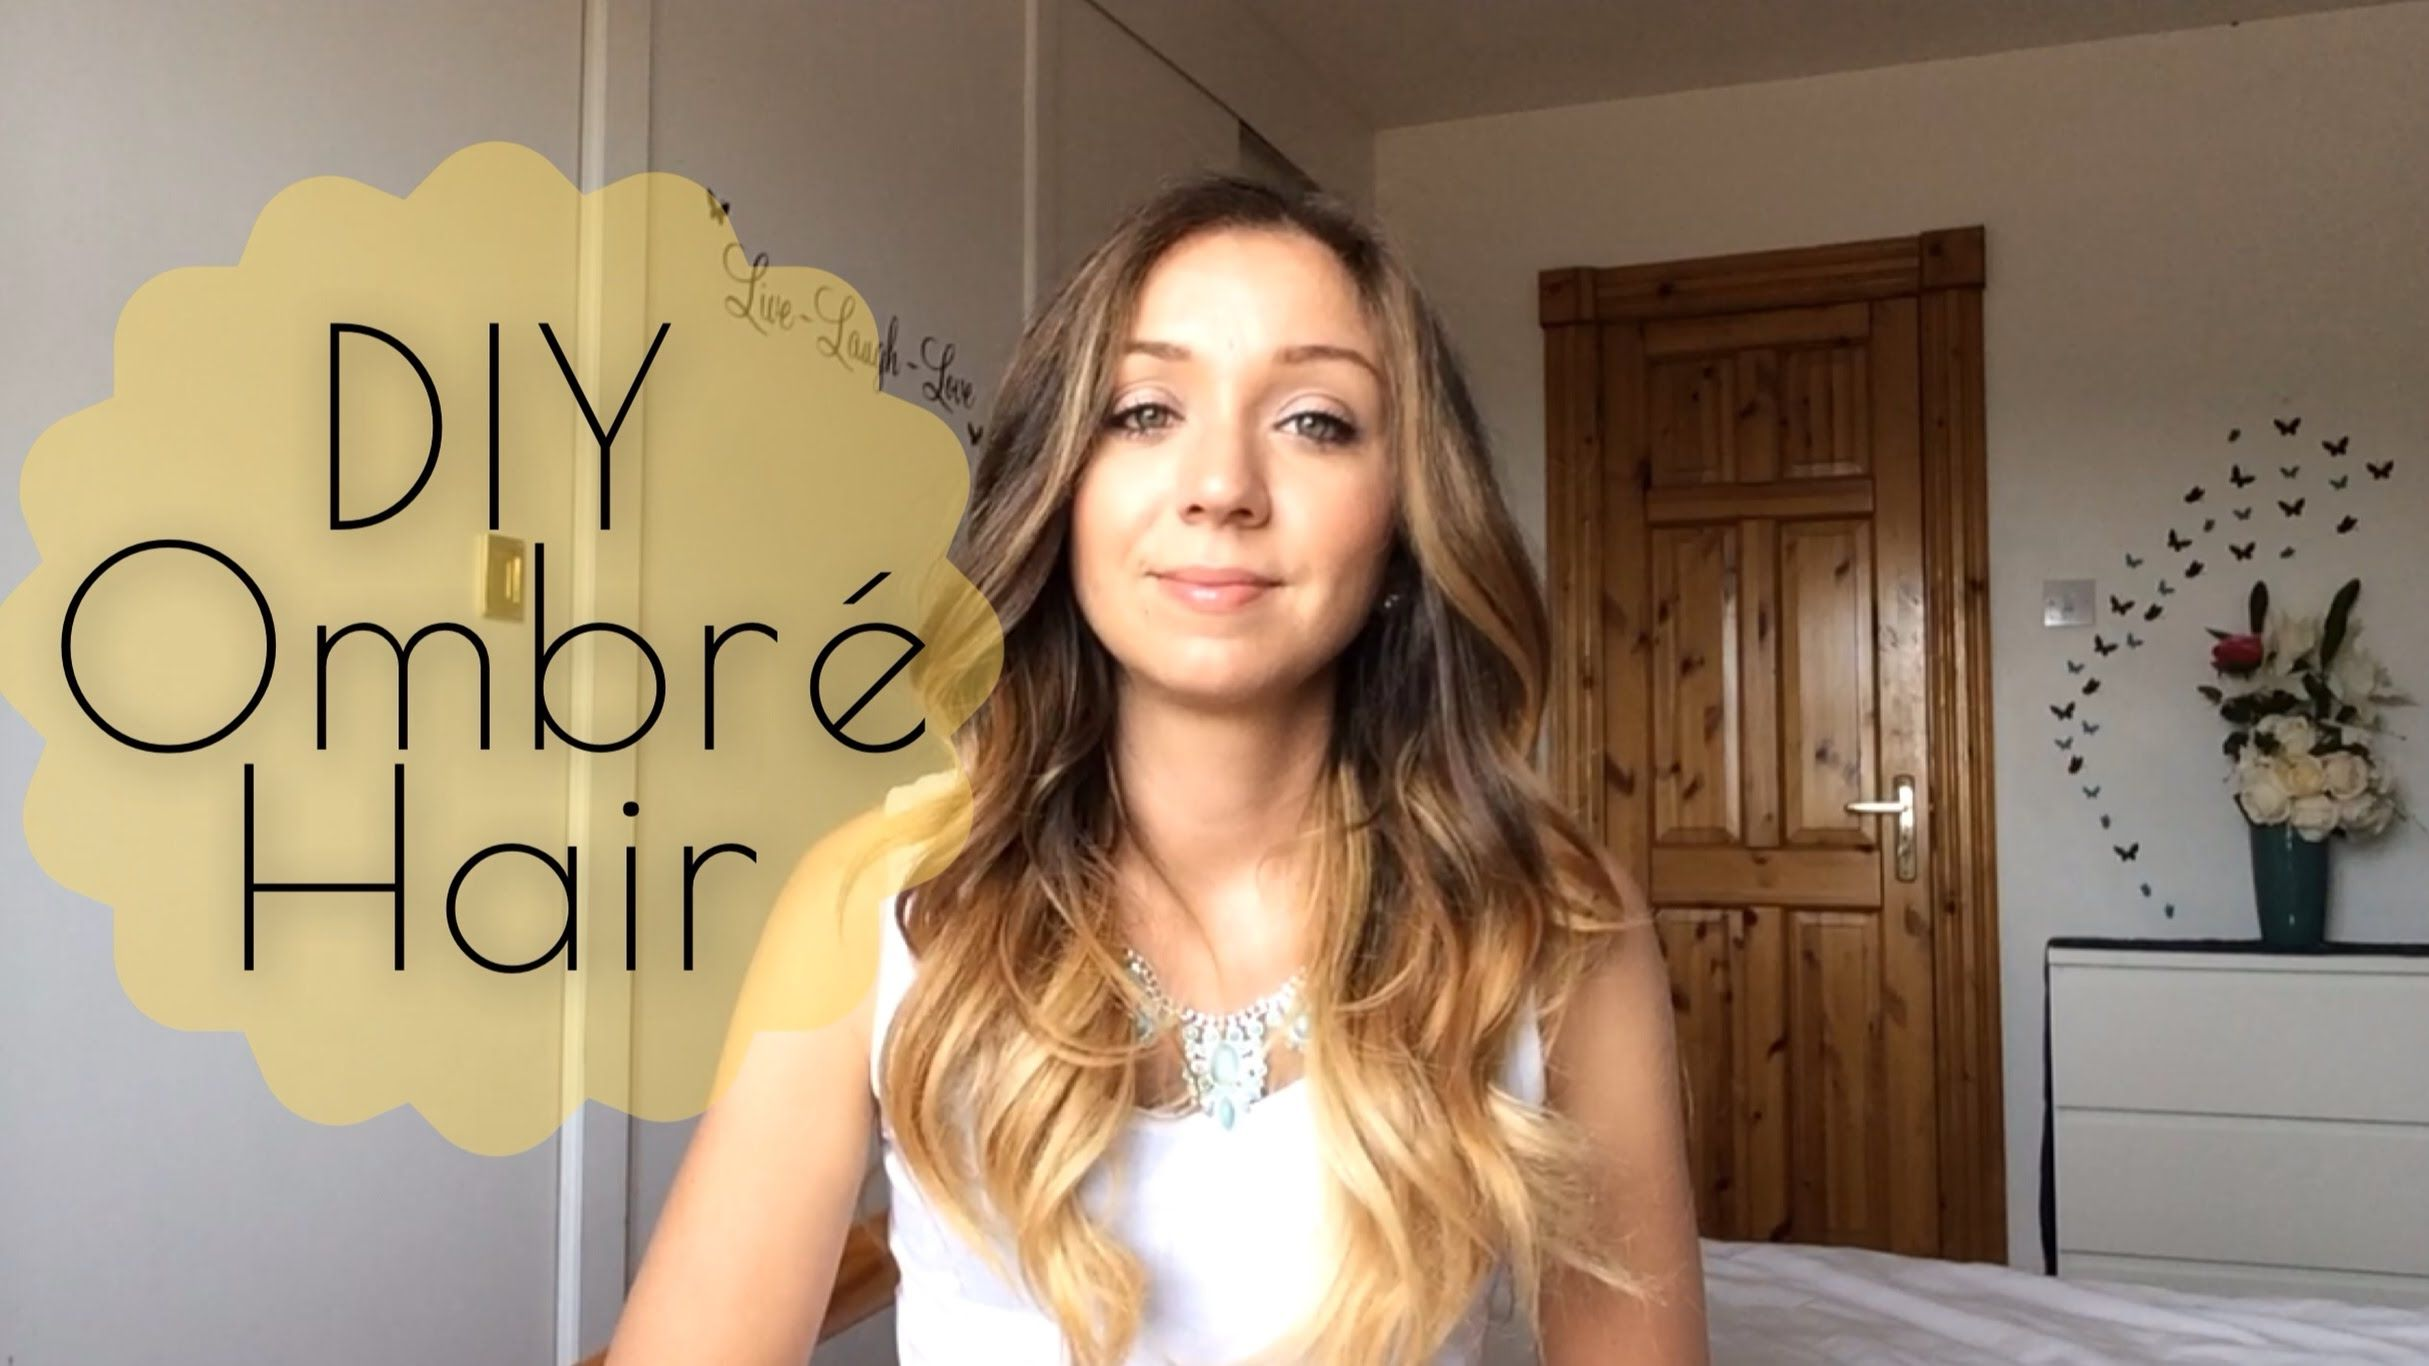 Diy how to ombr hair at home she even talks about what she did diy how to ombr hair at home she even talks about what she did wrong and how she fixed it solutioingenieria Images